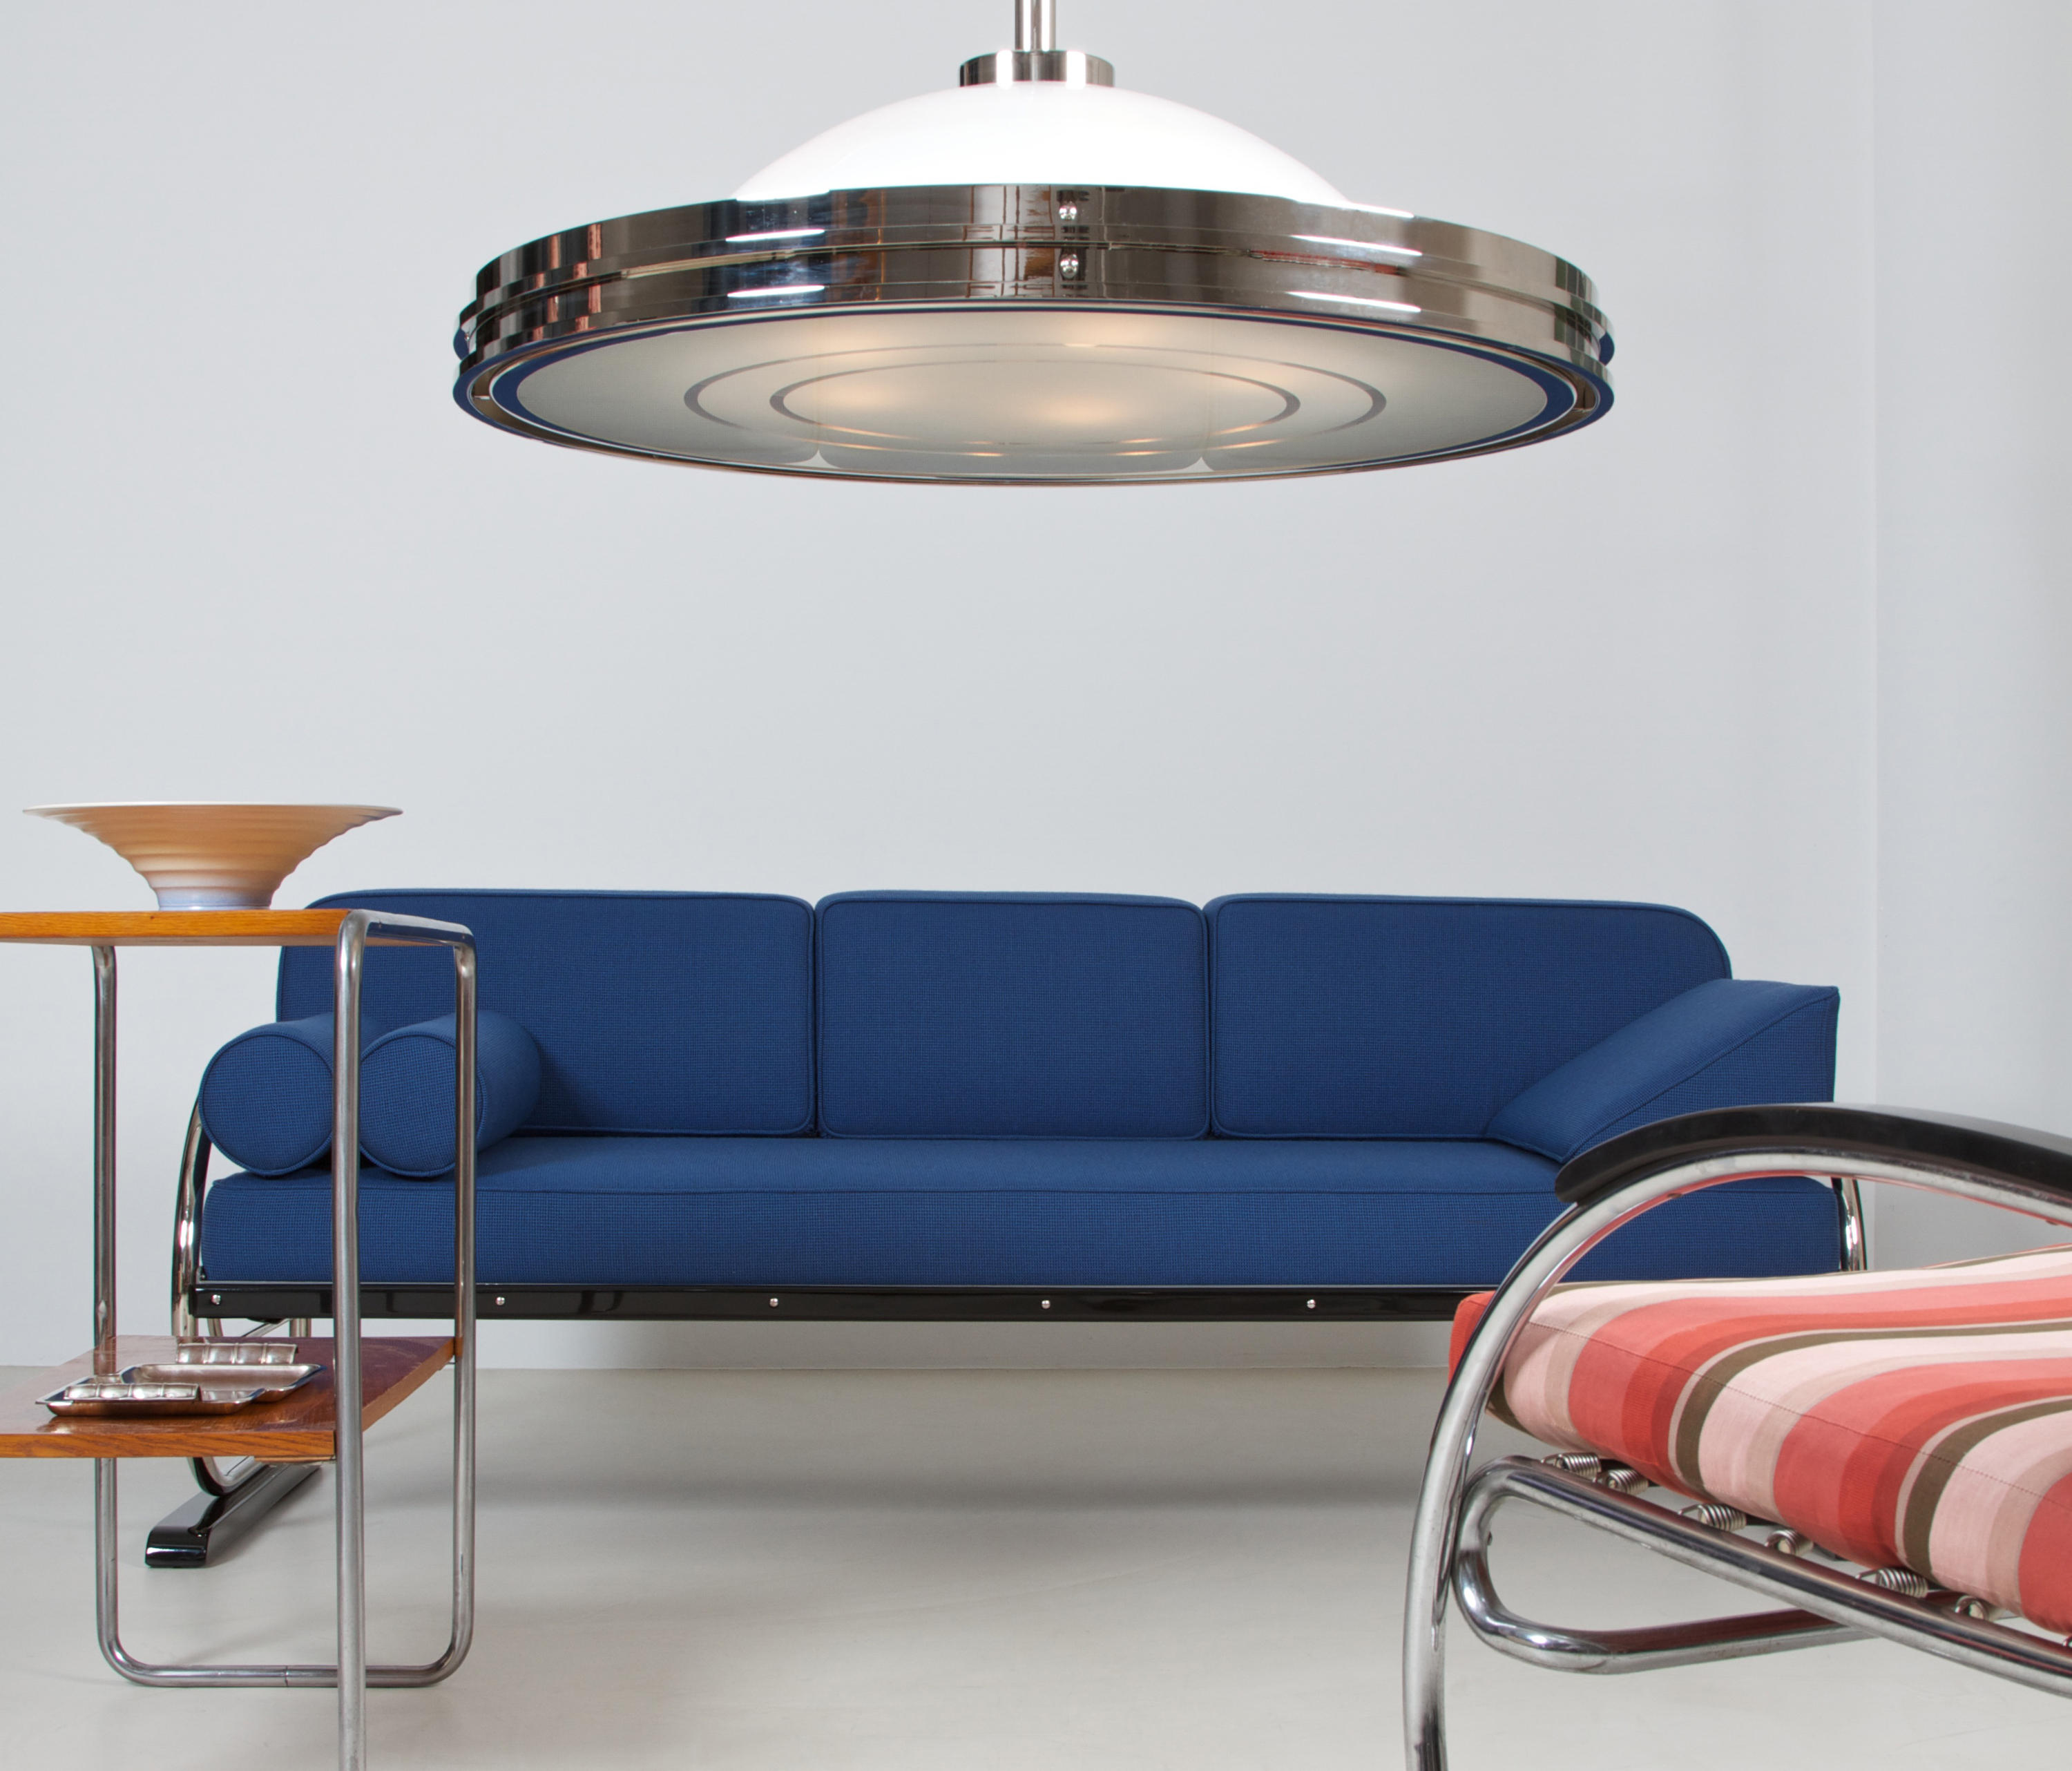 pendant lamp berlin in the style of the bauhaus modernism general lighting from zeitlos. Black Bedroom Furniture Sets. Home Design Ideas